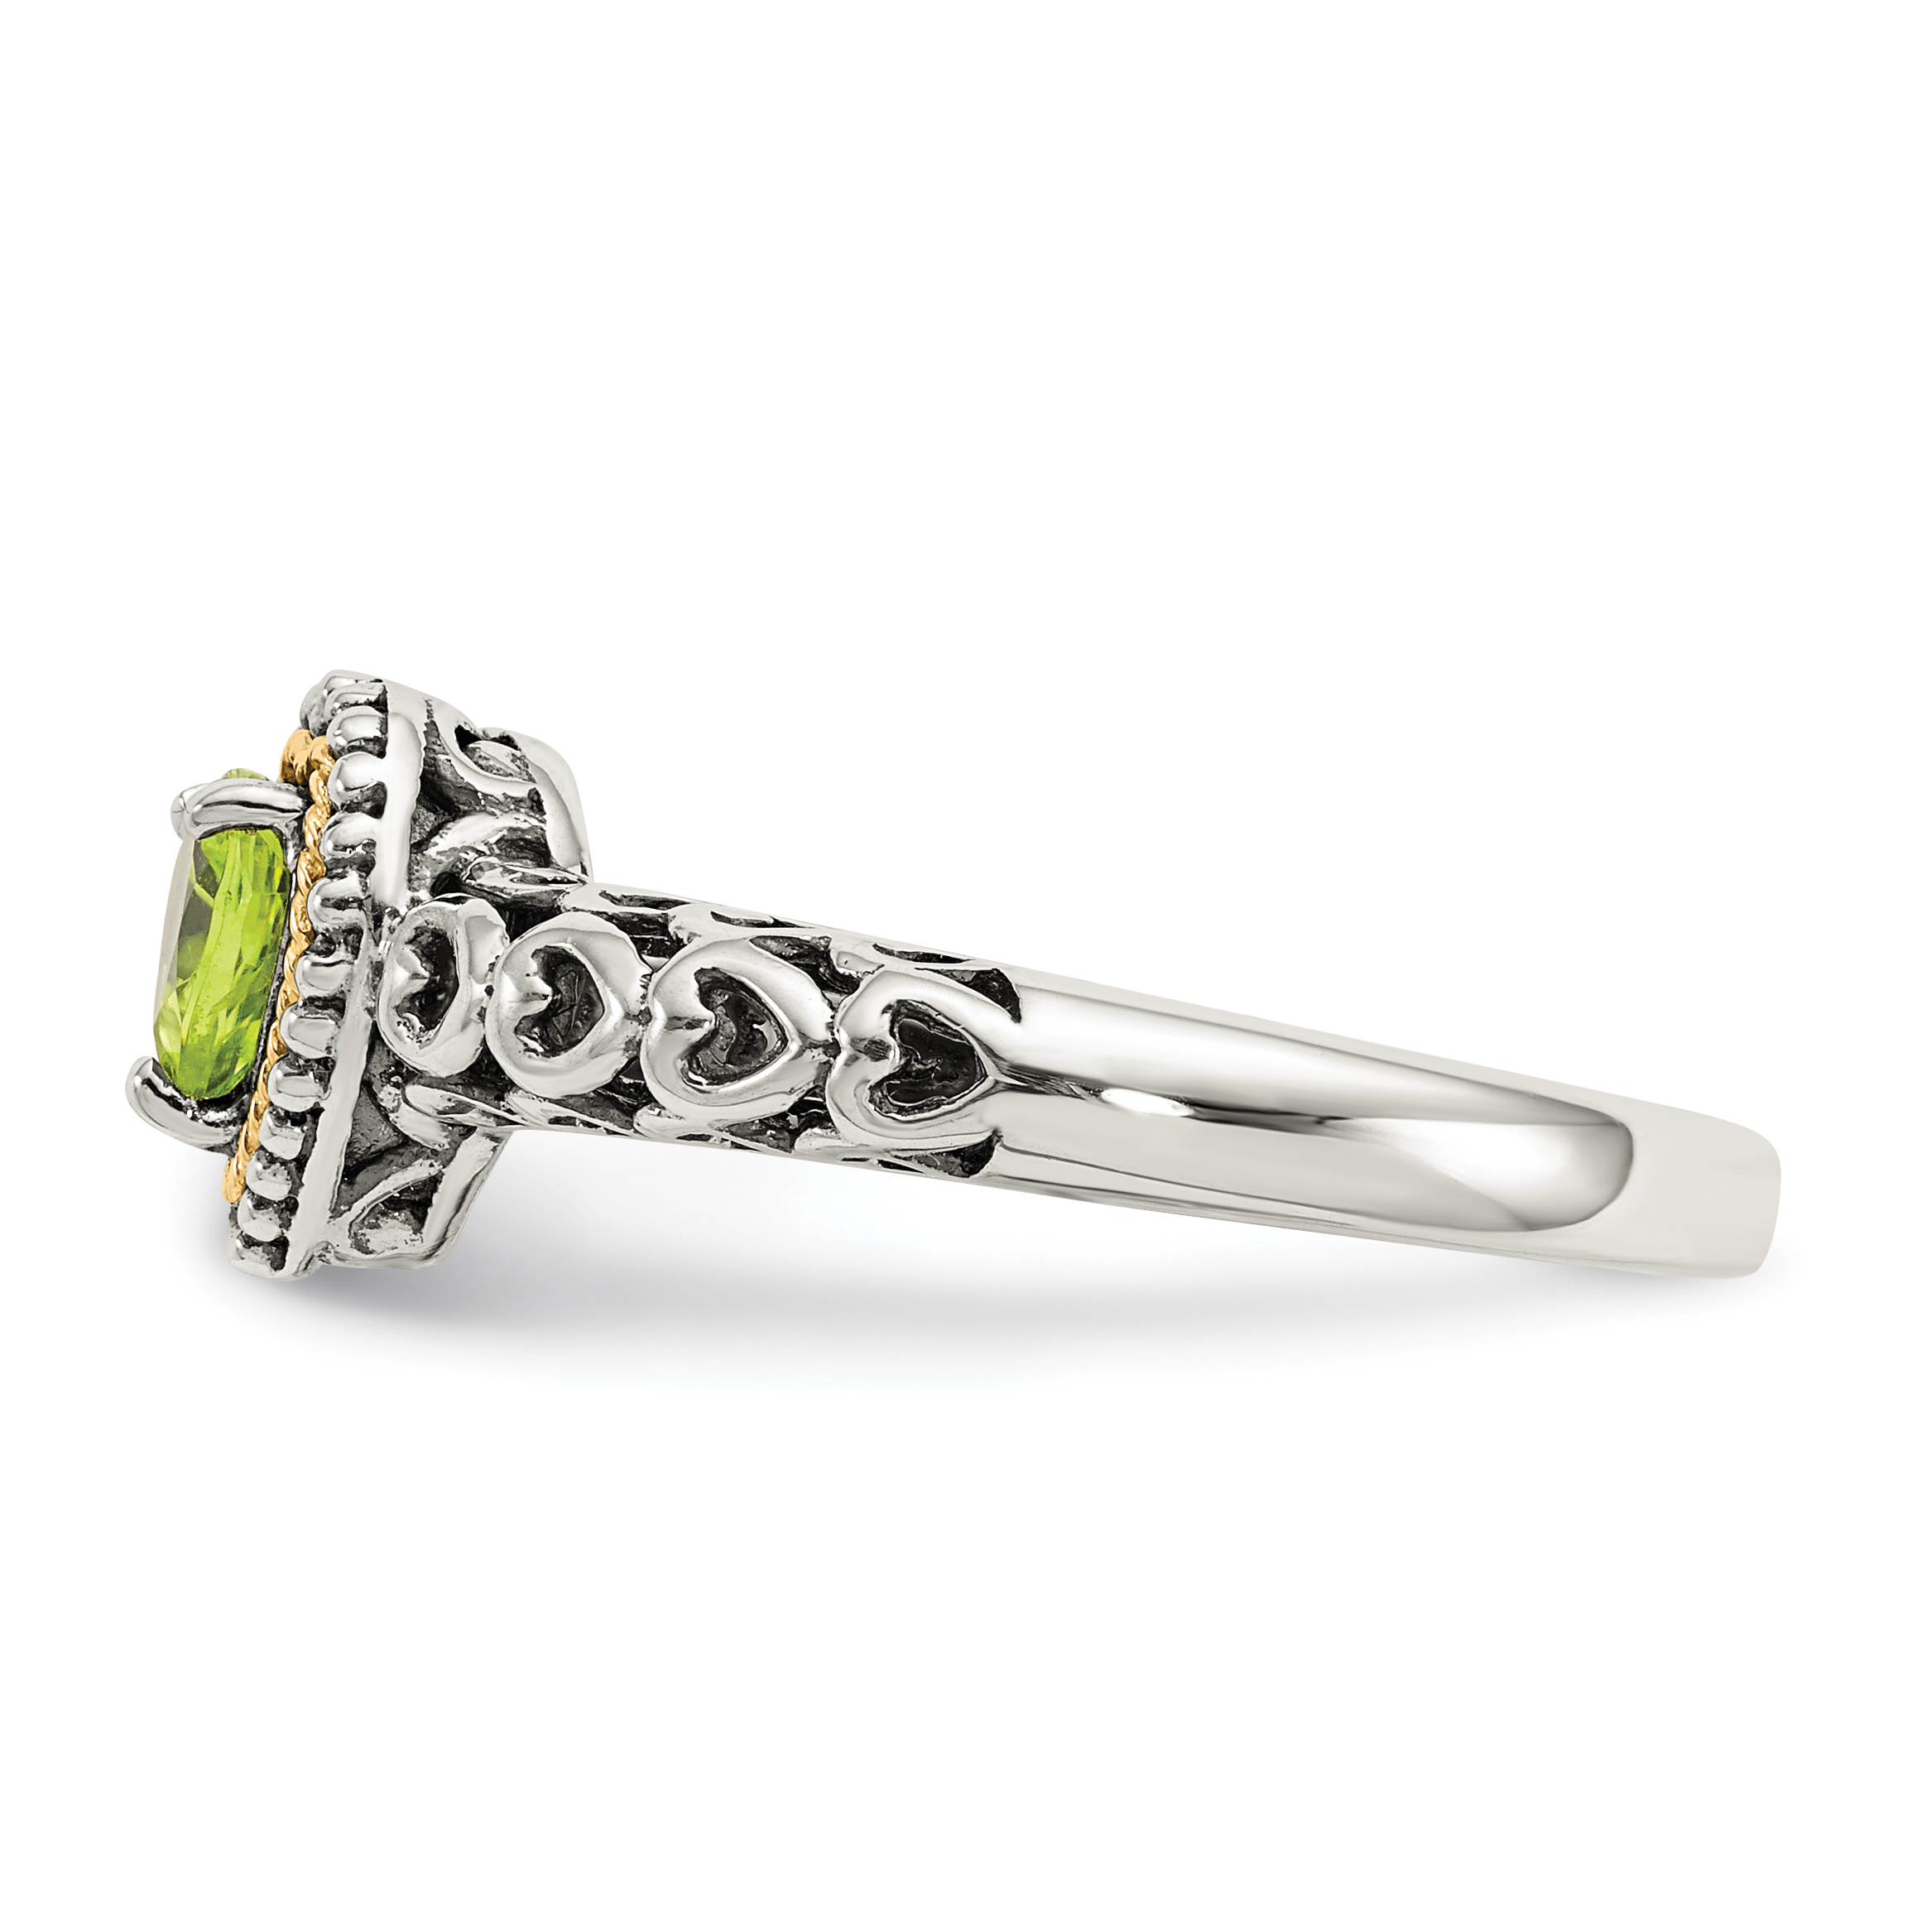 925 Sterling Silver 14k Green Peridot Band Ring Size 6.00 S/love Gemstone Fine Jewelry Gifts For Women For Her - image 5 de 6